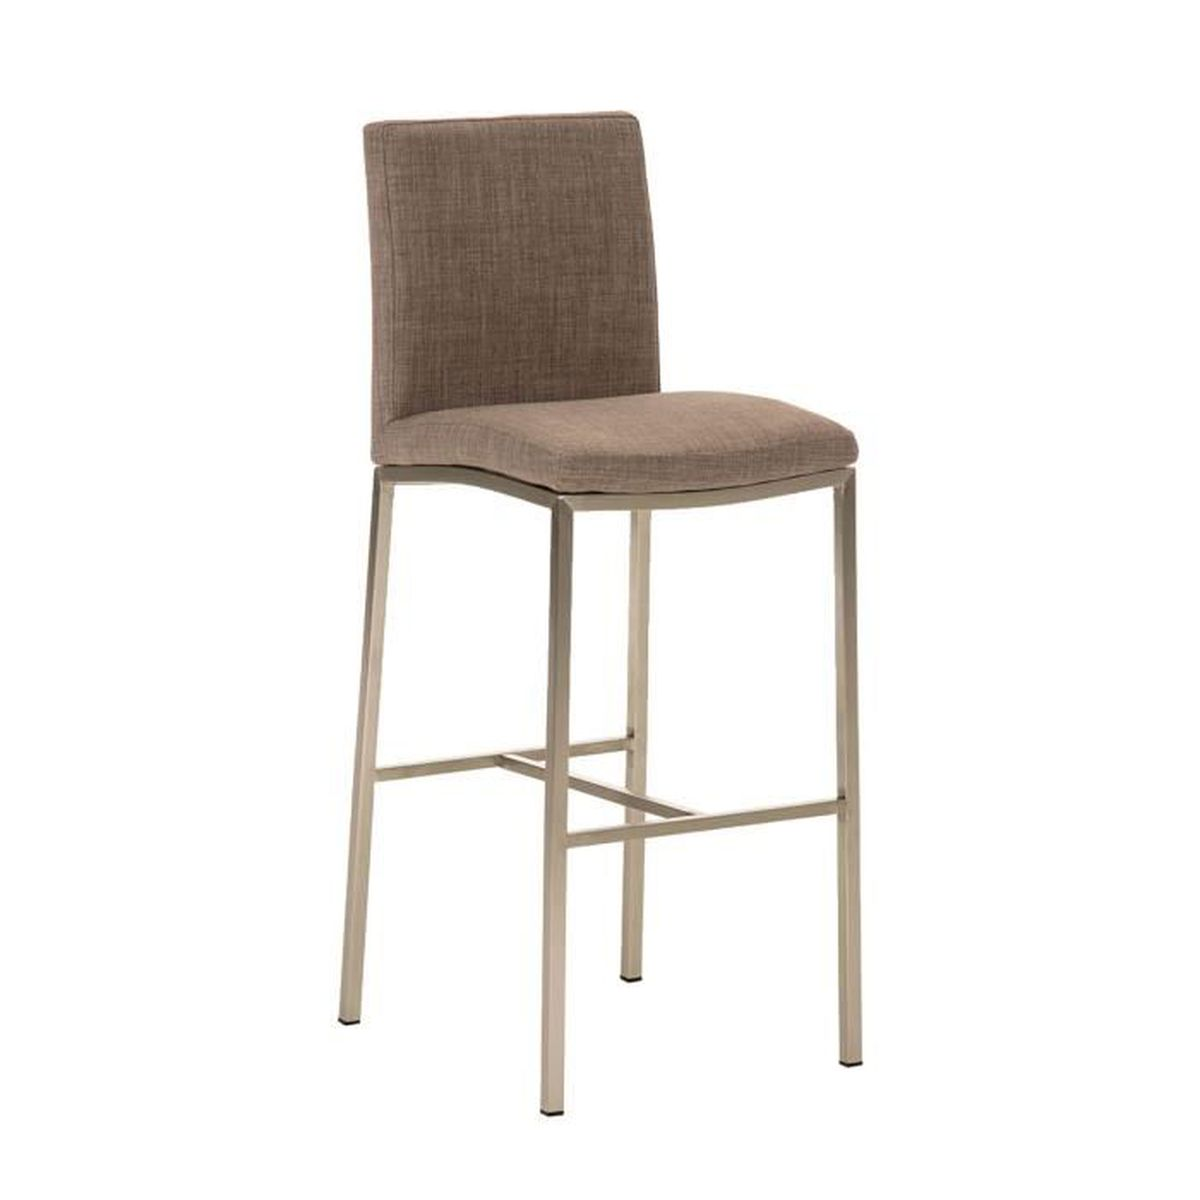 tabouret de bar en acier inoxydable avec si ge en tissu gris 110 x 40 x 49 cm achat vente. Black Bedroom Furniture Sets. Home Design Ideas